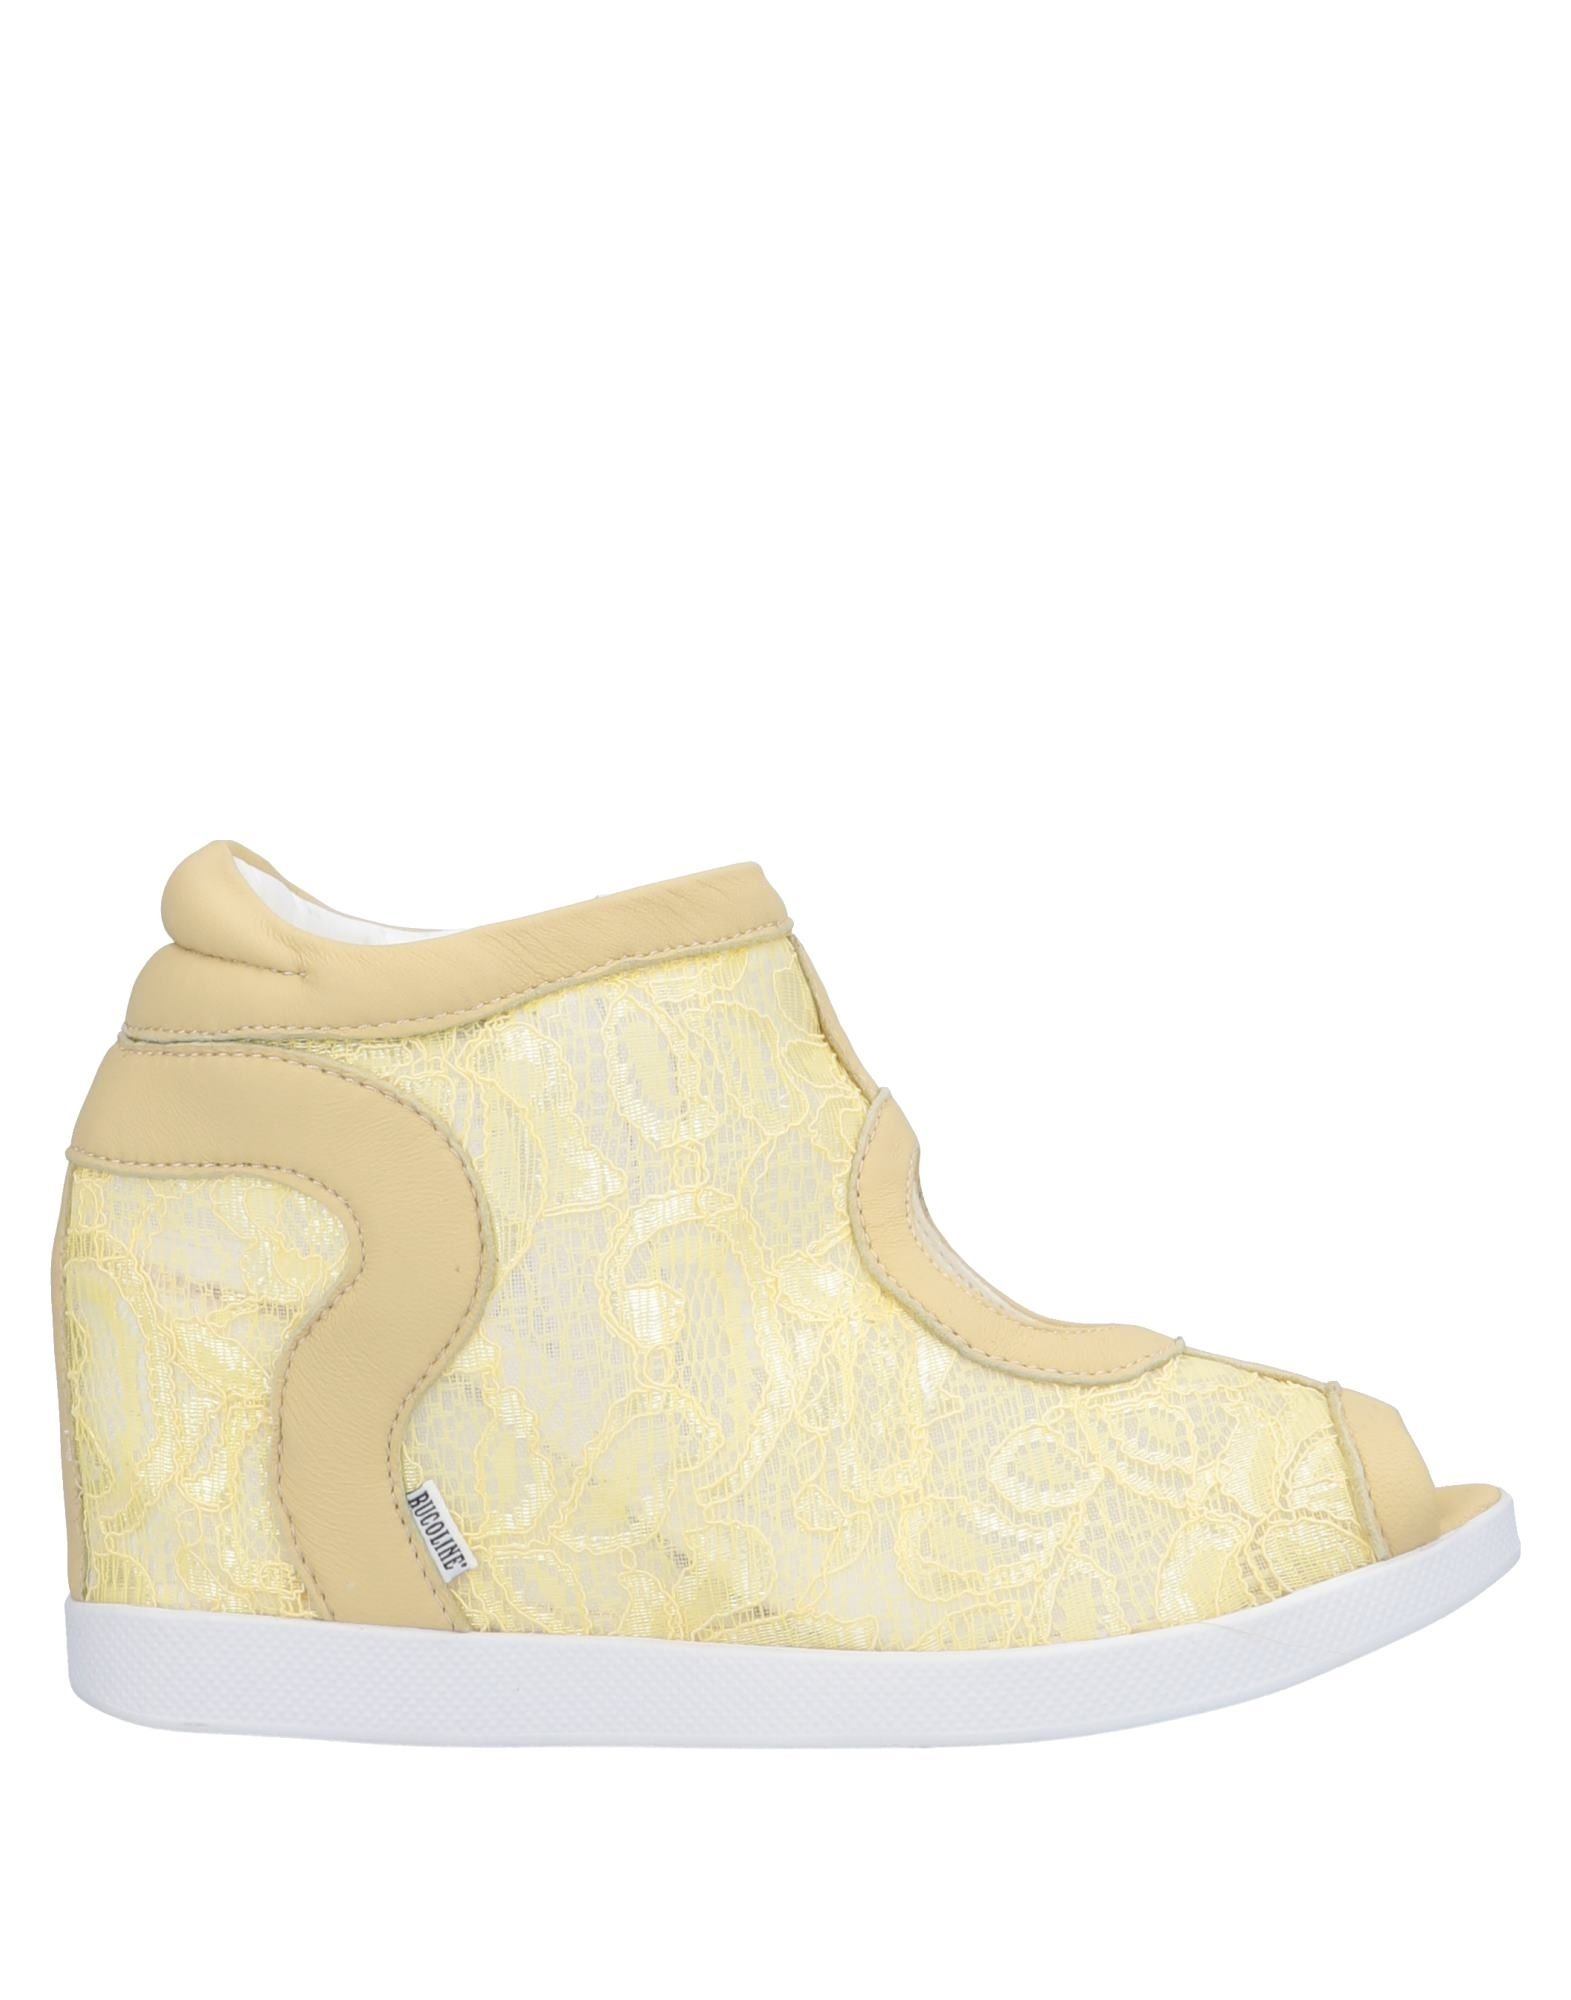 Ruco Line Sneakers - Women Ruco  Line Sneakers online on  Ruco United Kingdom - 11559531HV 1f6650